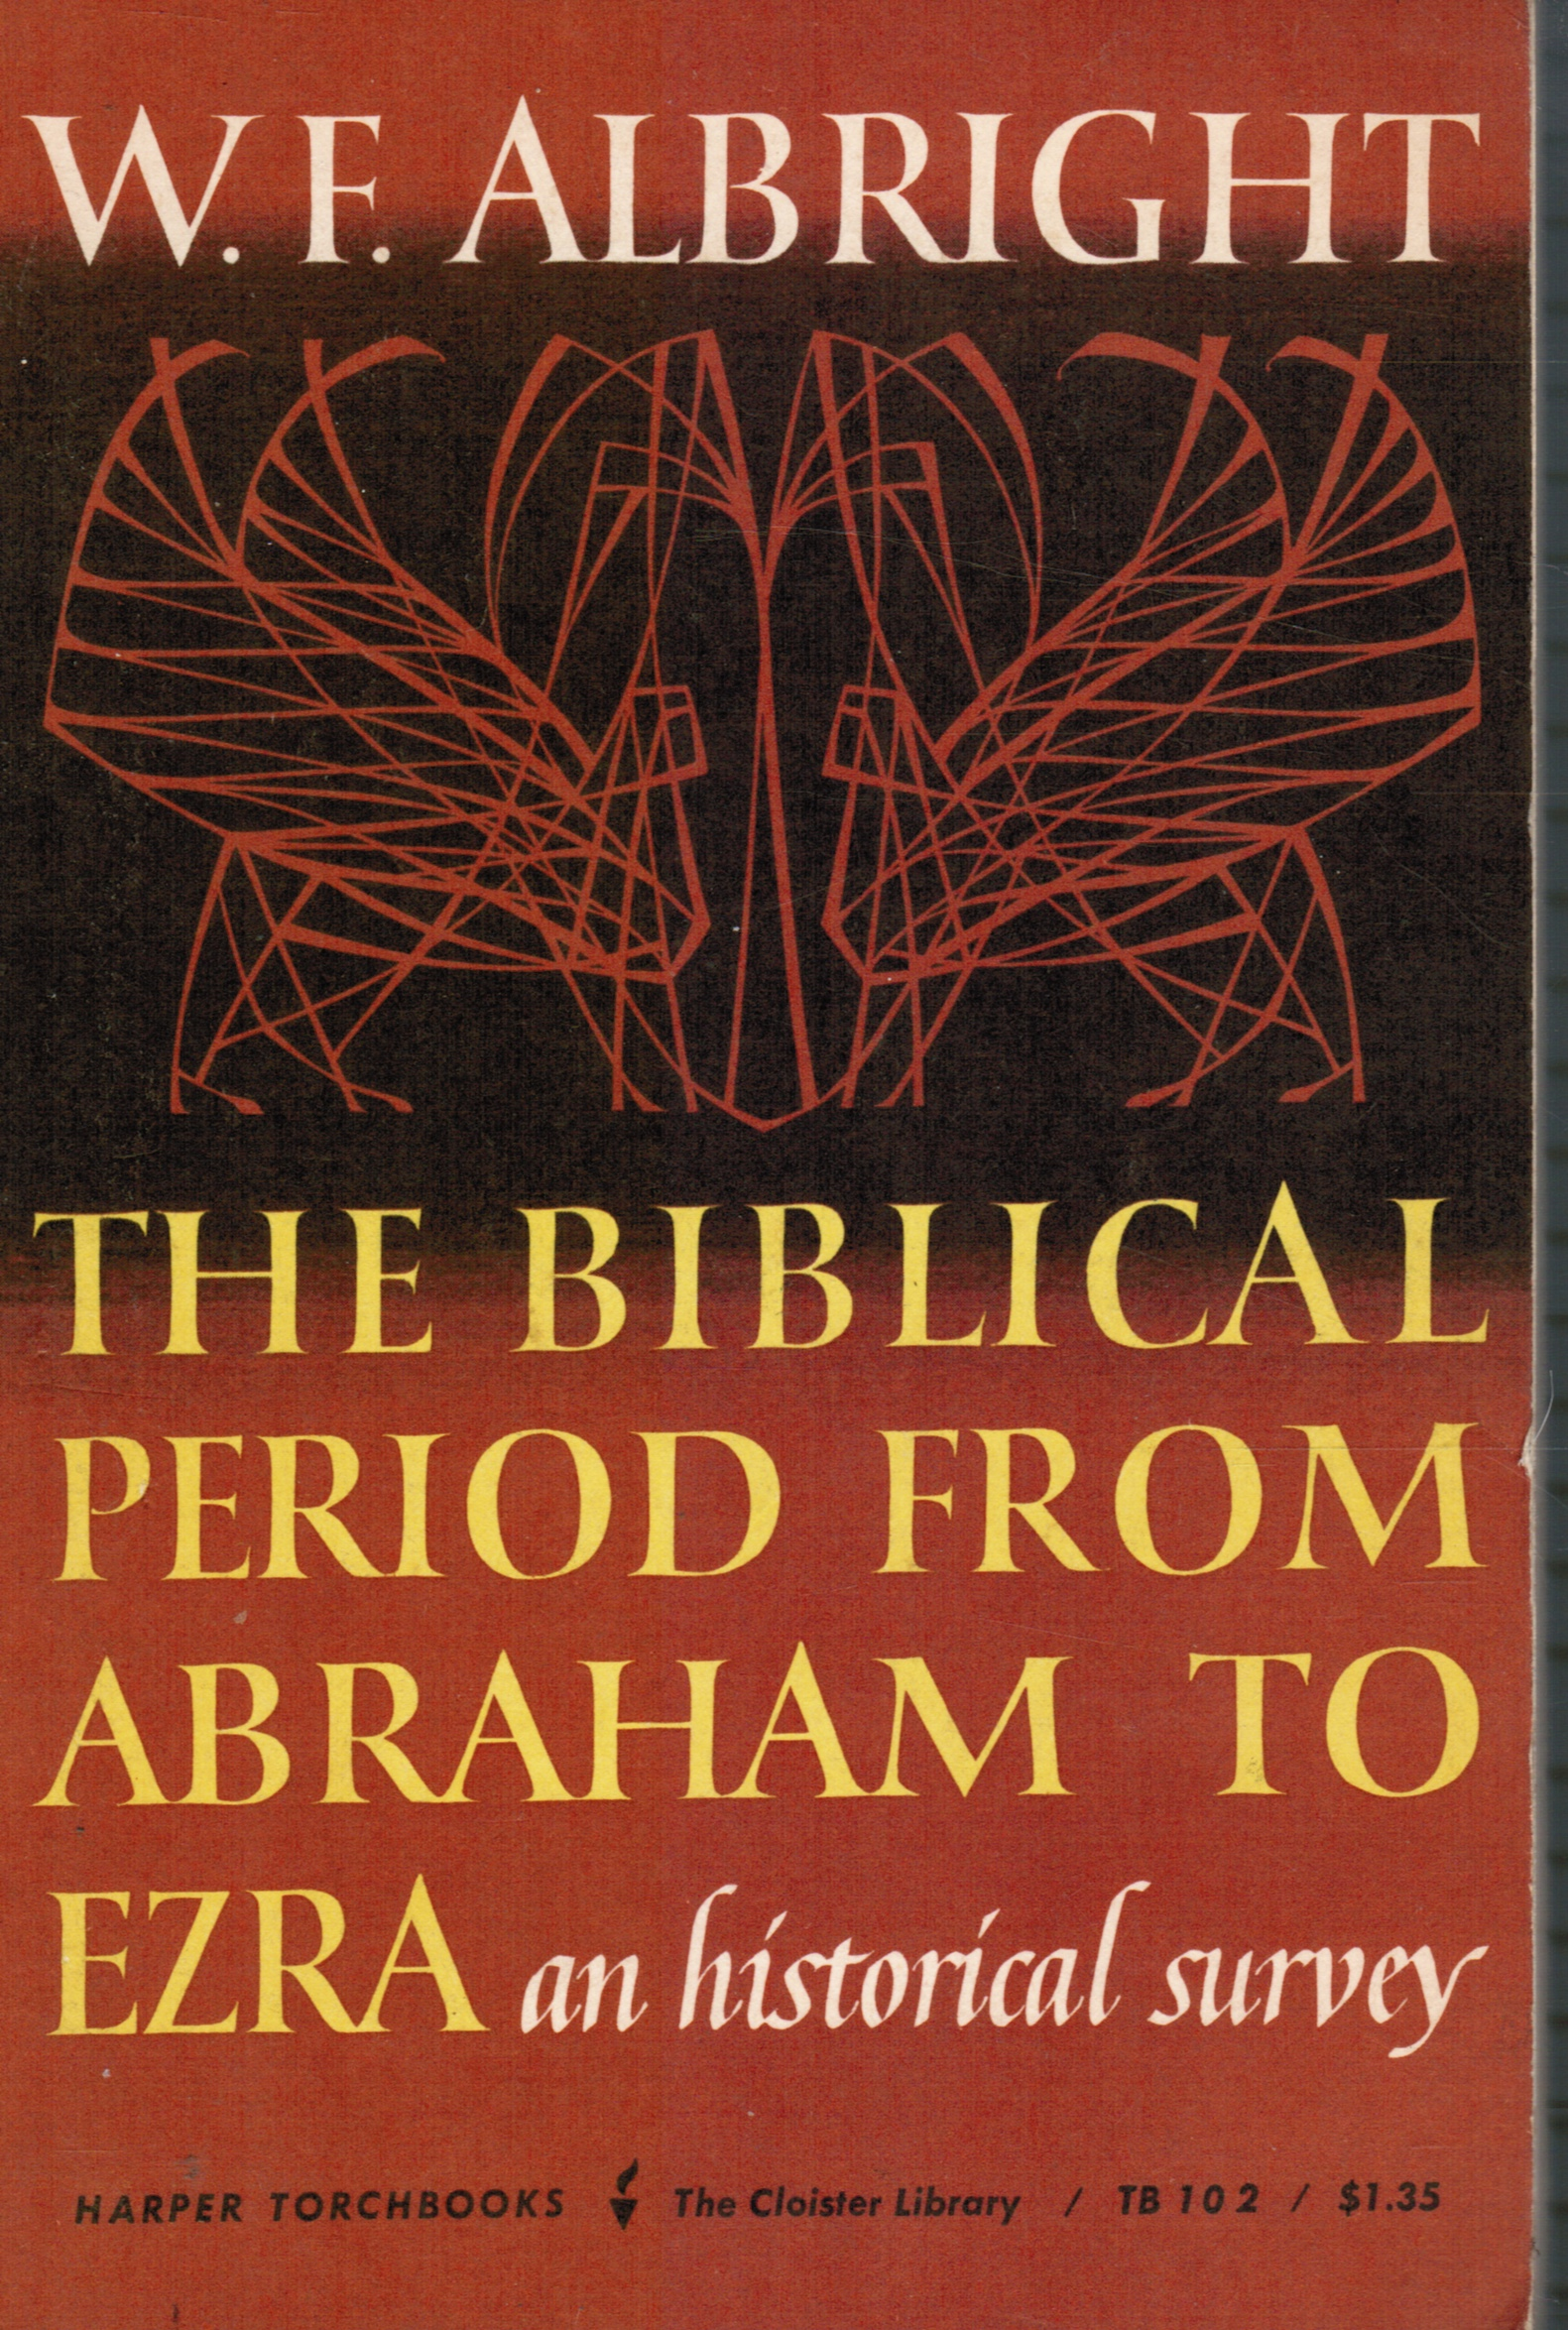 Image for The Biblical Period From Abraham to Ezra